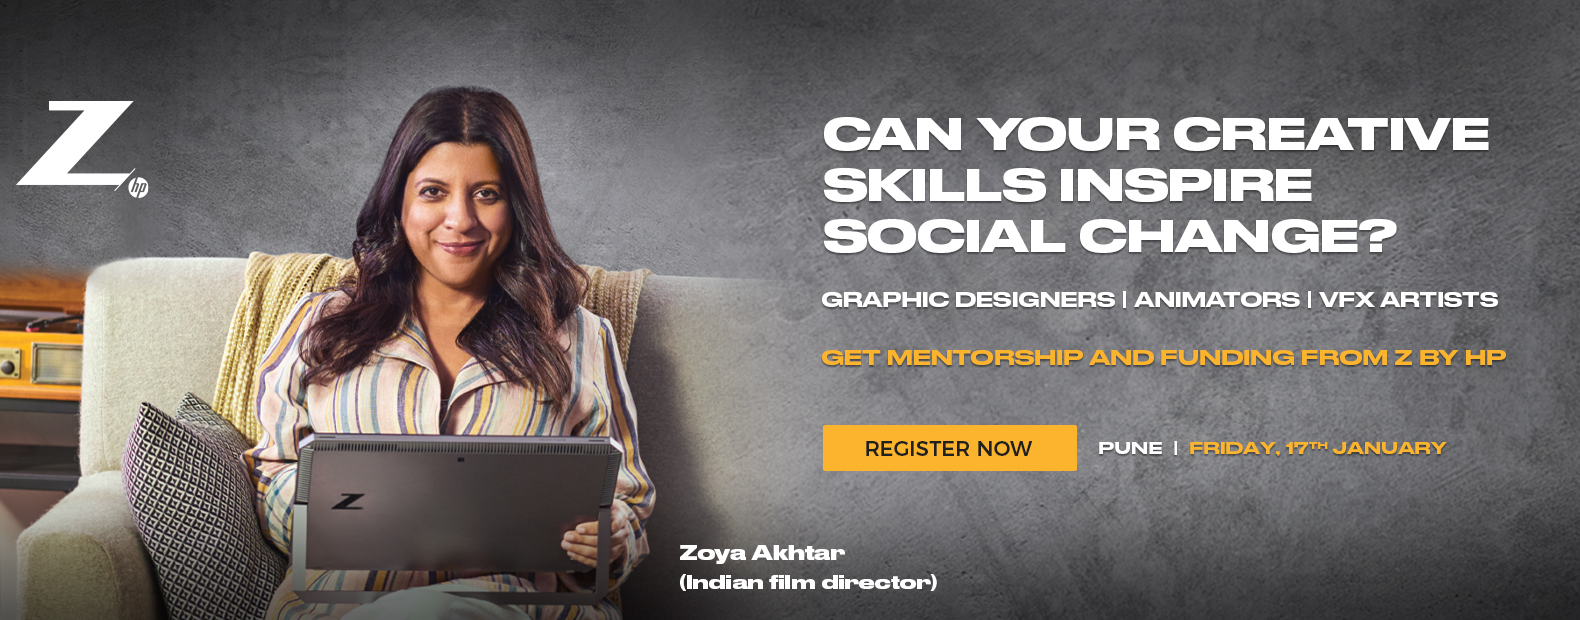 REGISTER NOW | PUNE | FRIDAY 17th JANUARY